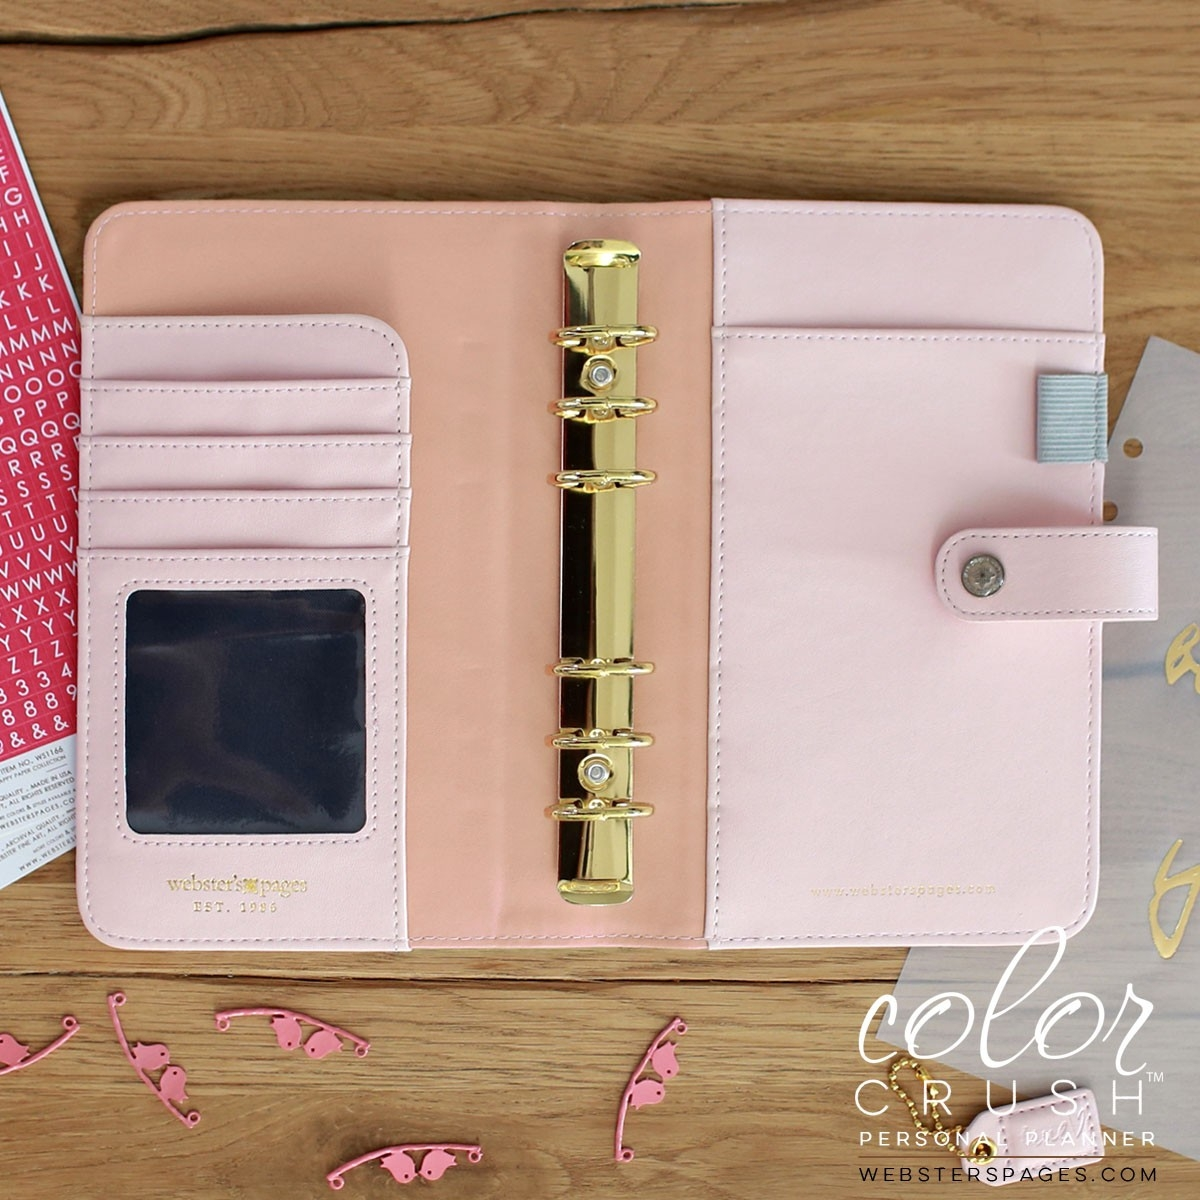 websters pages color crush - personal planner platinum rose binder only